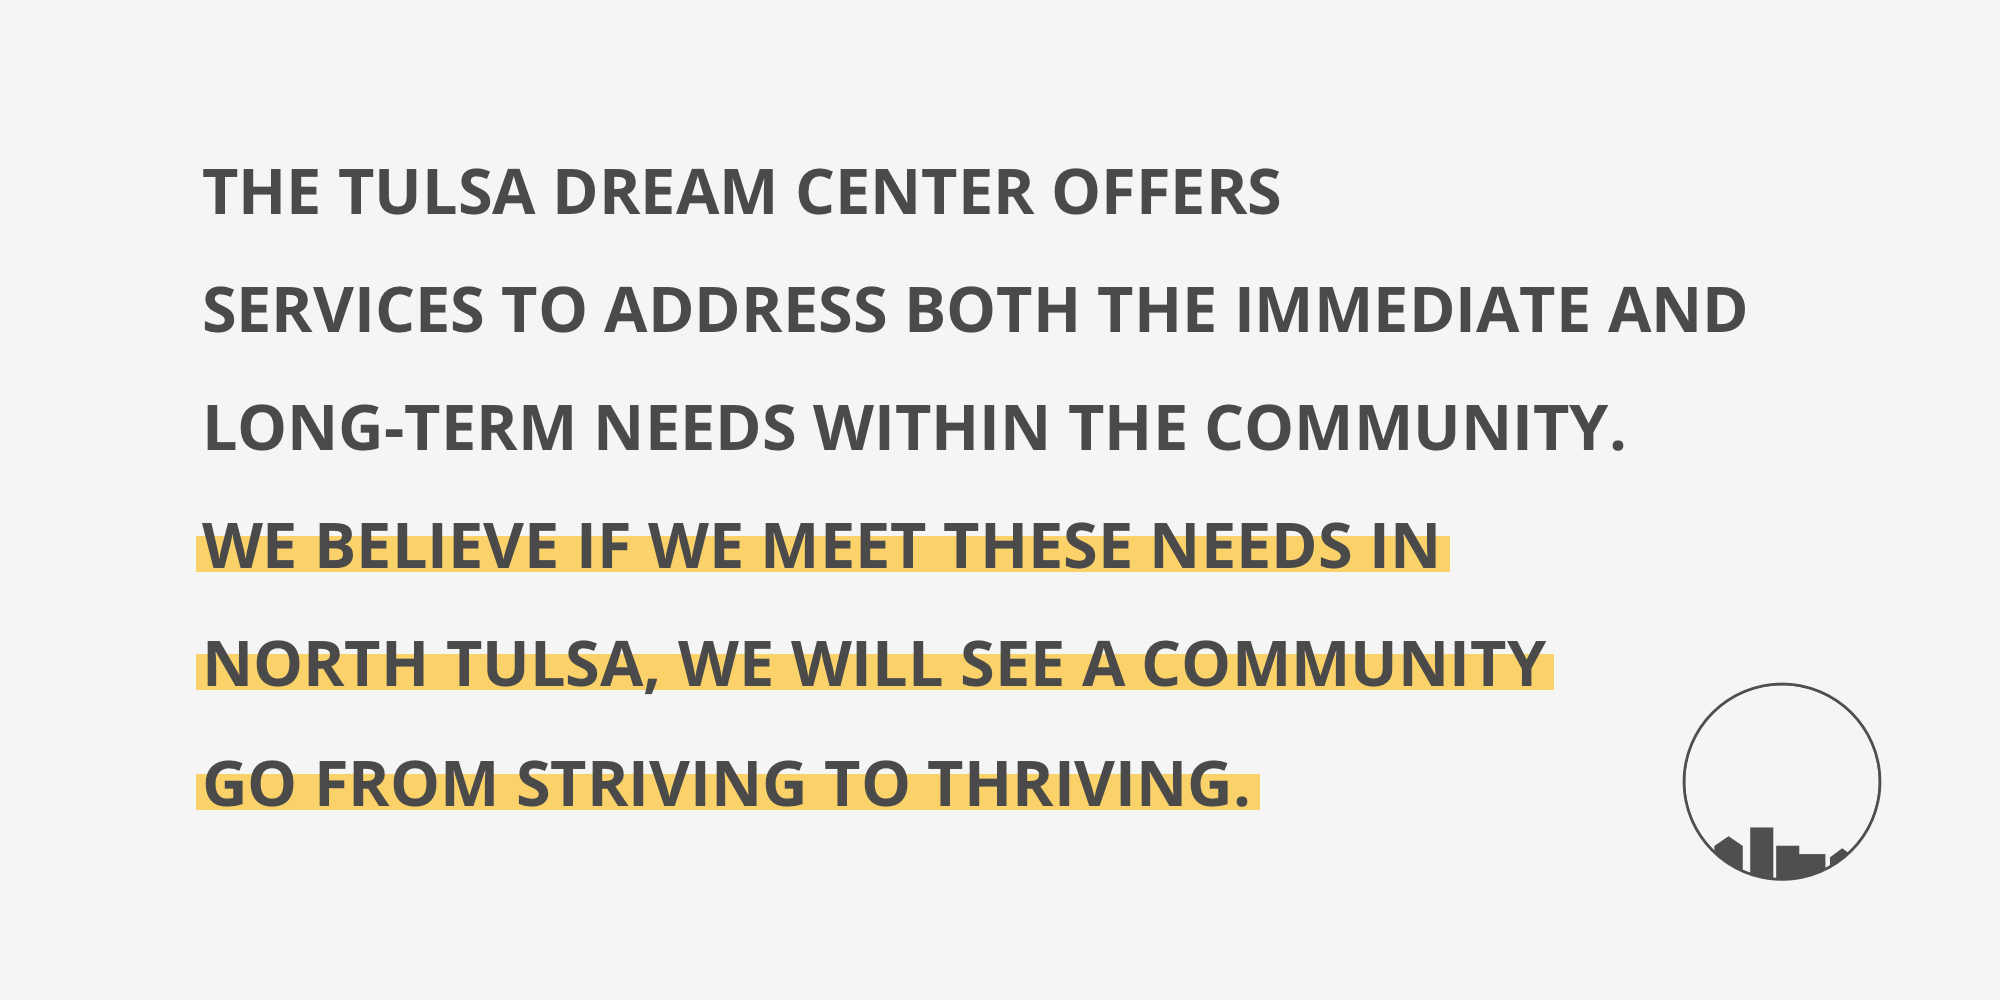 the tulsa dream center offers services.png